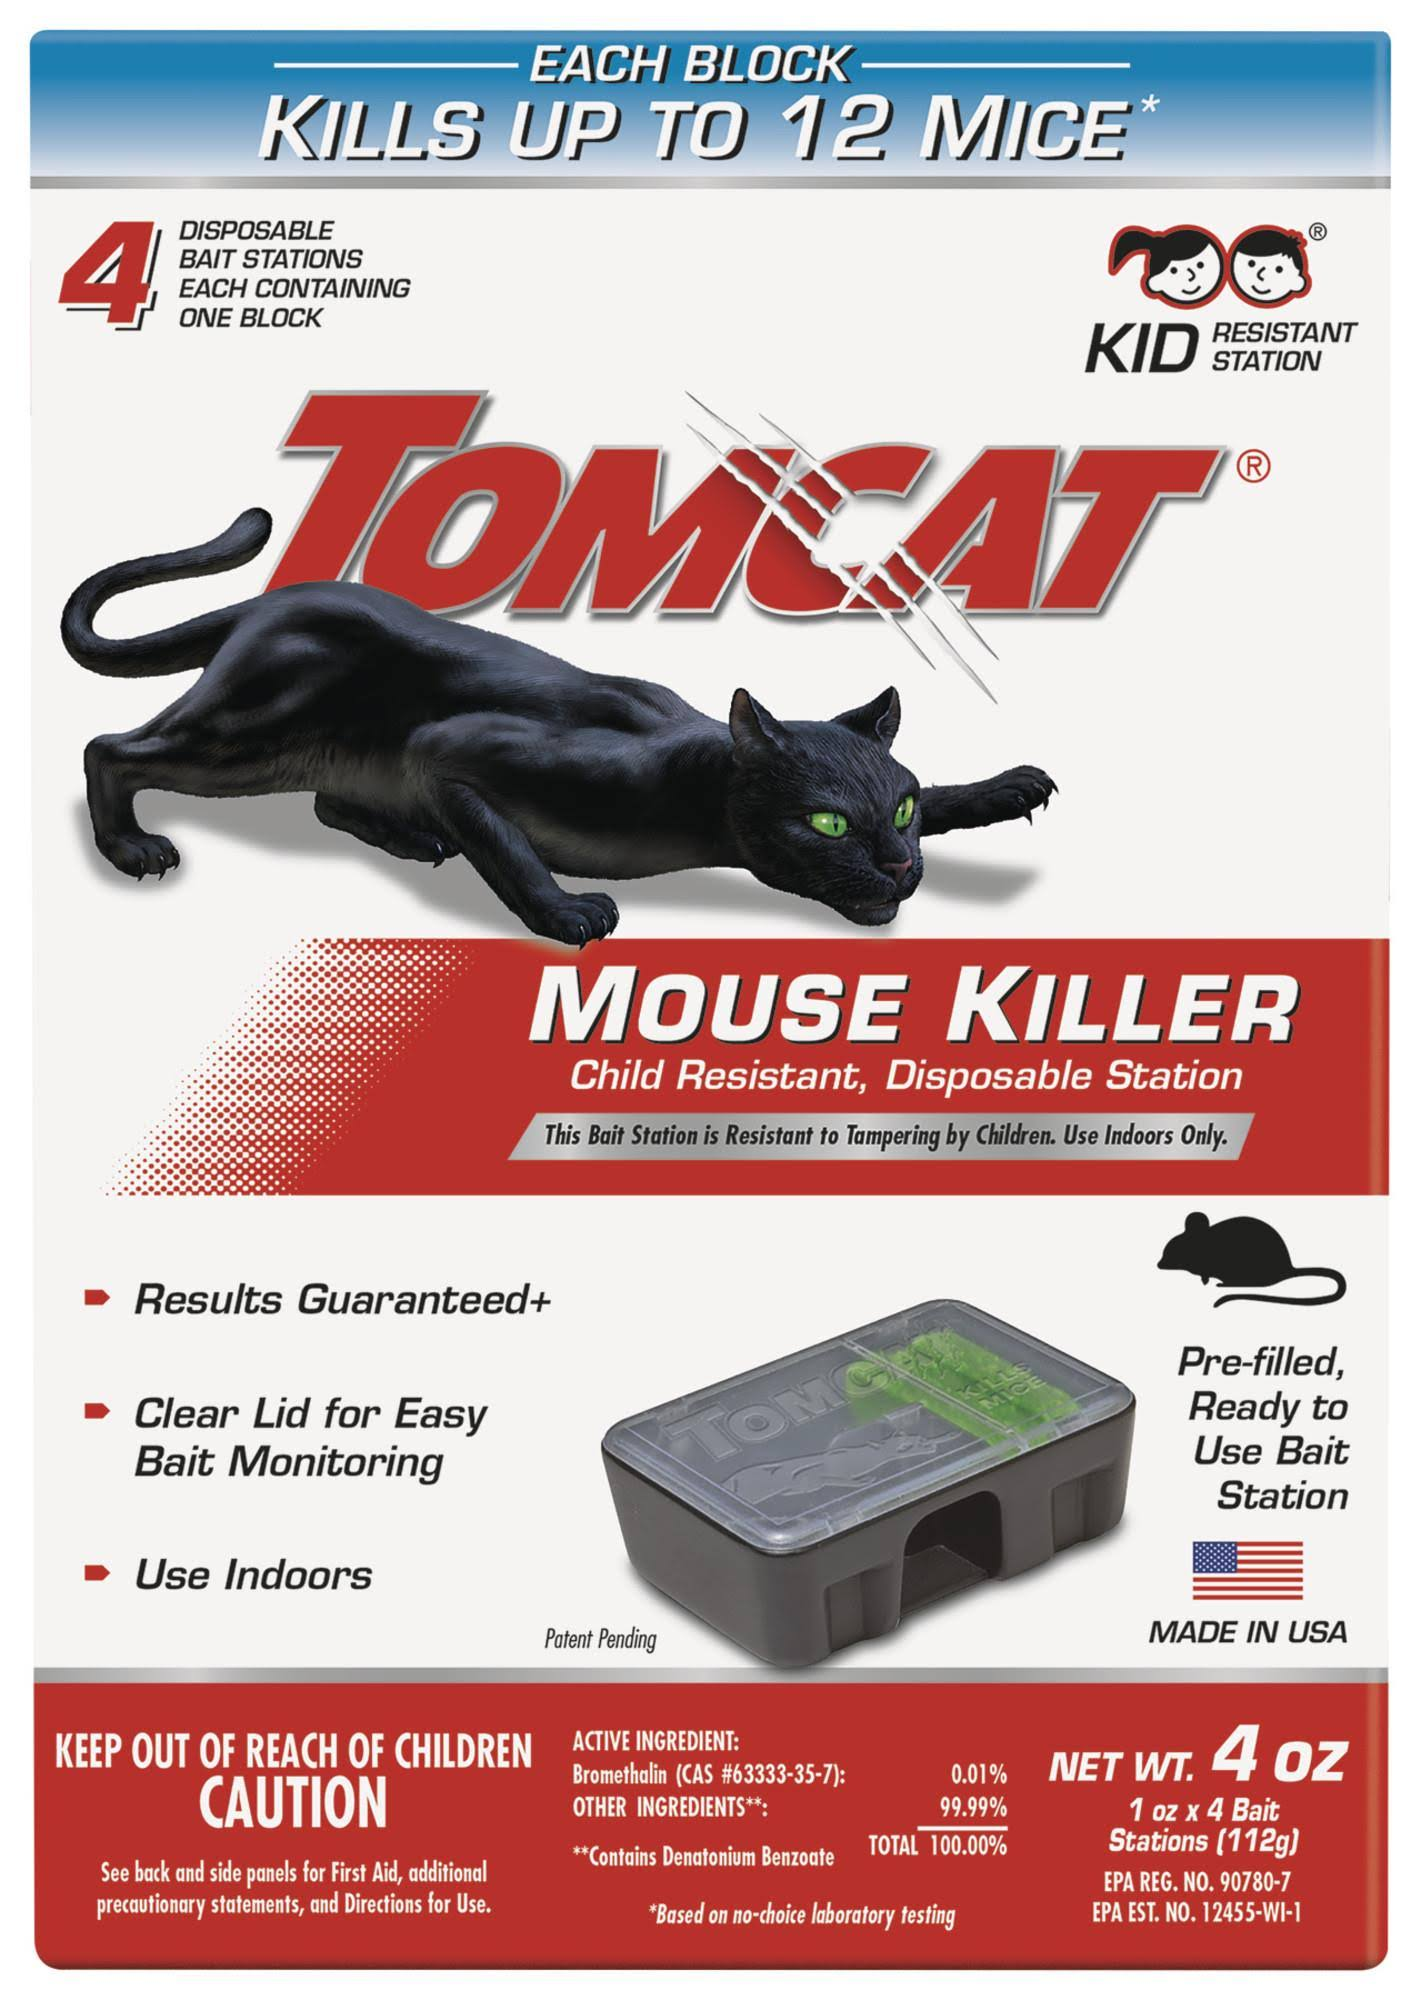 Tomcat Disposable Mouse Killer Bait Stations - 4 Disposable Bait Stations